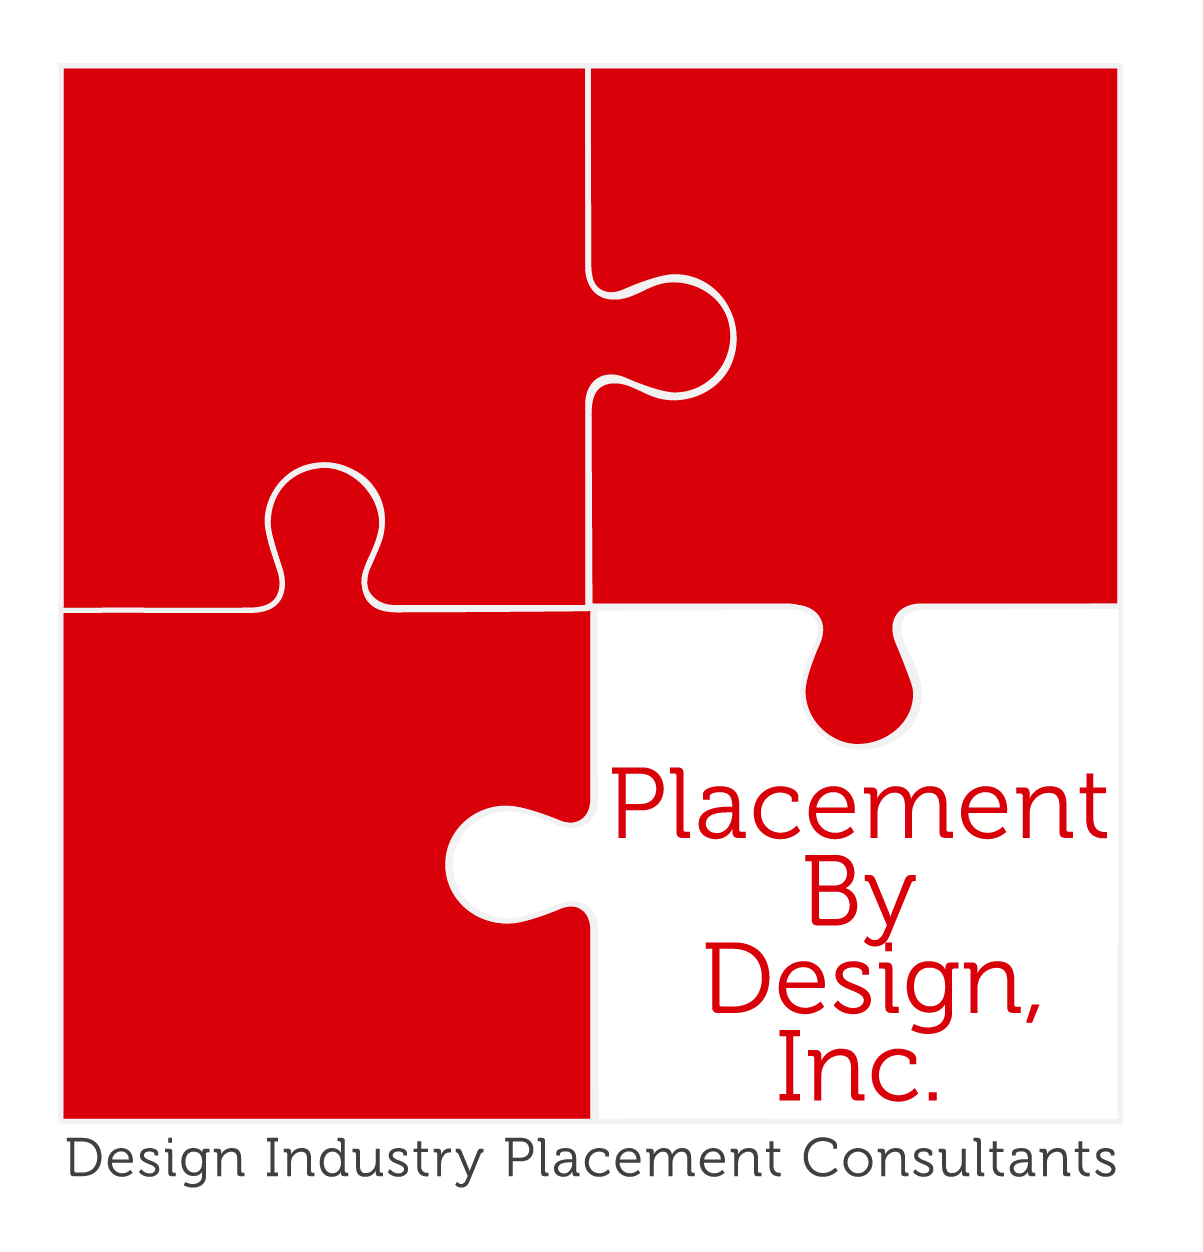 WiA YG5M 2020 - Placement by Design logo